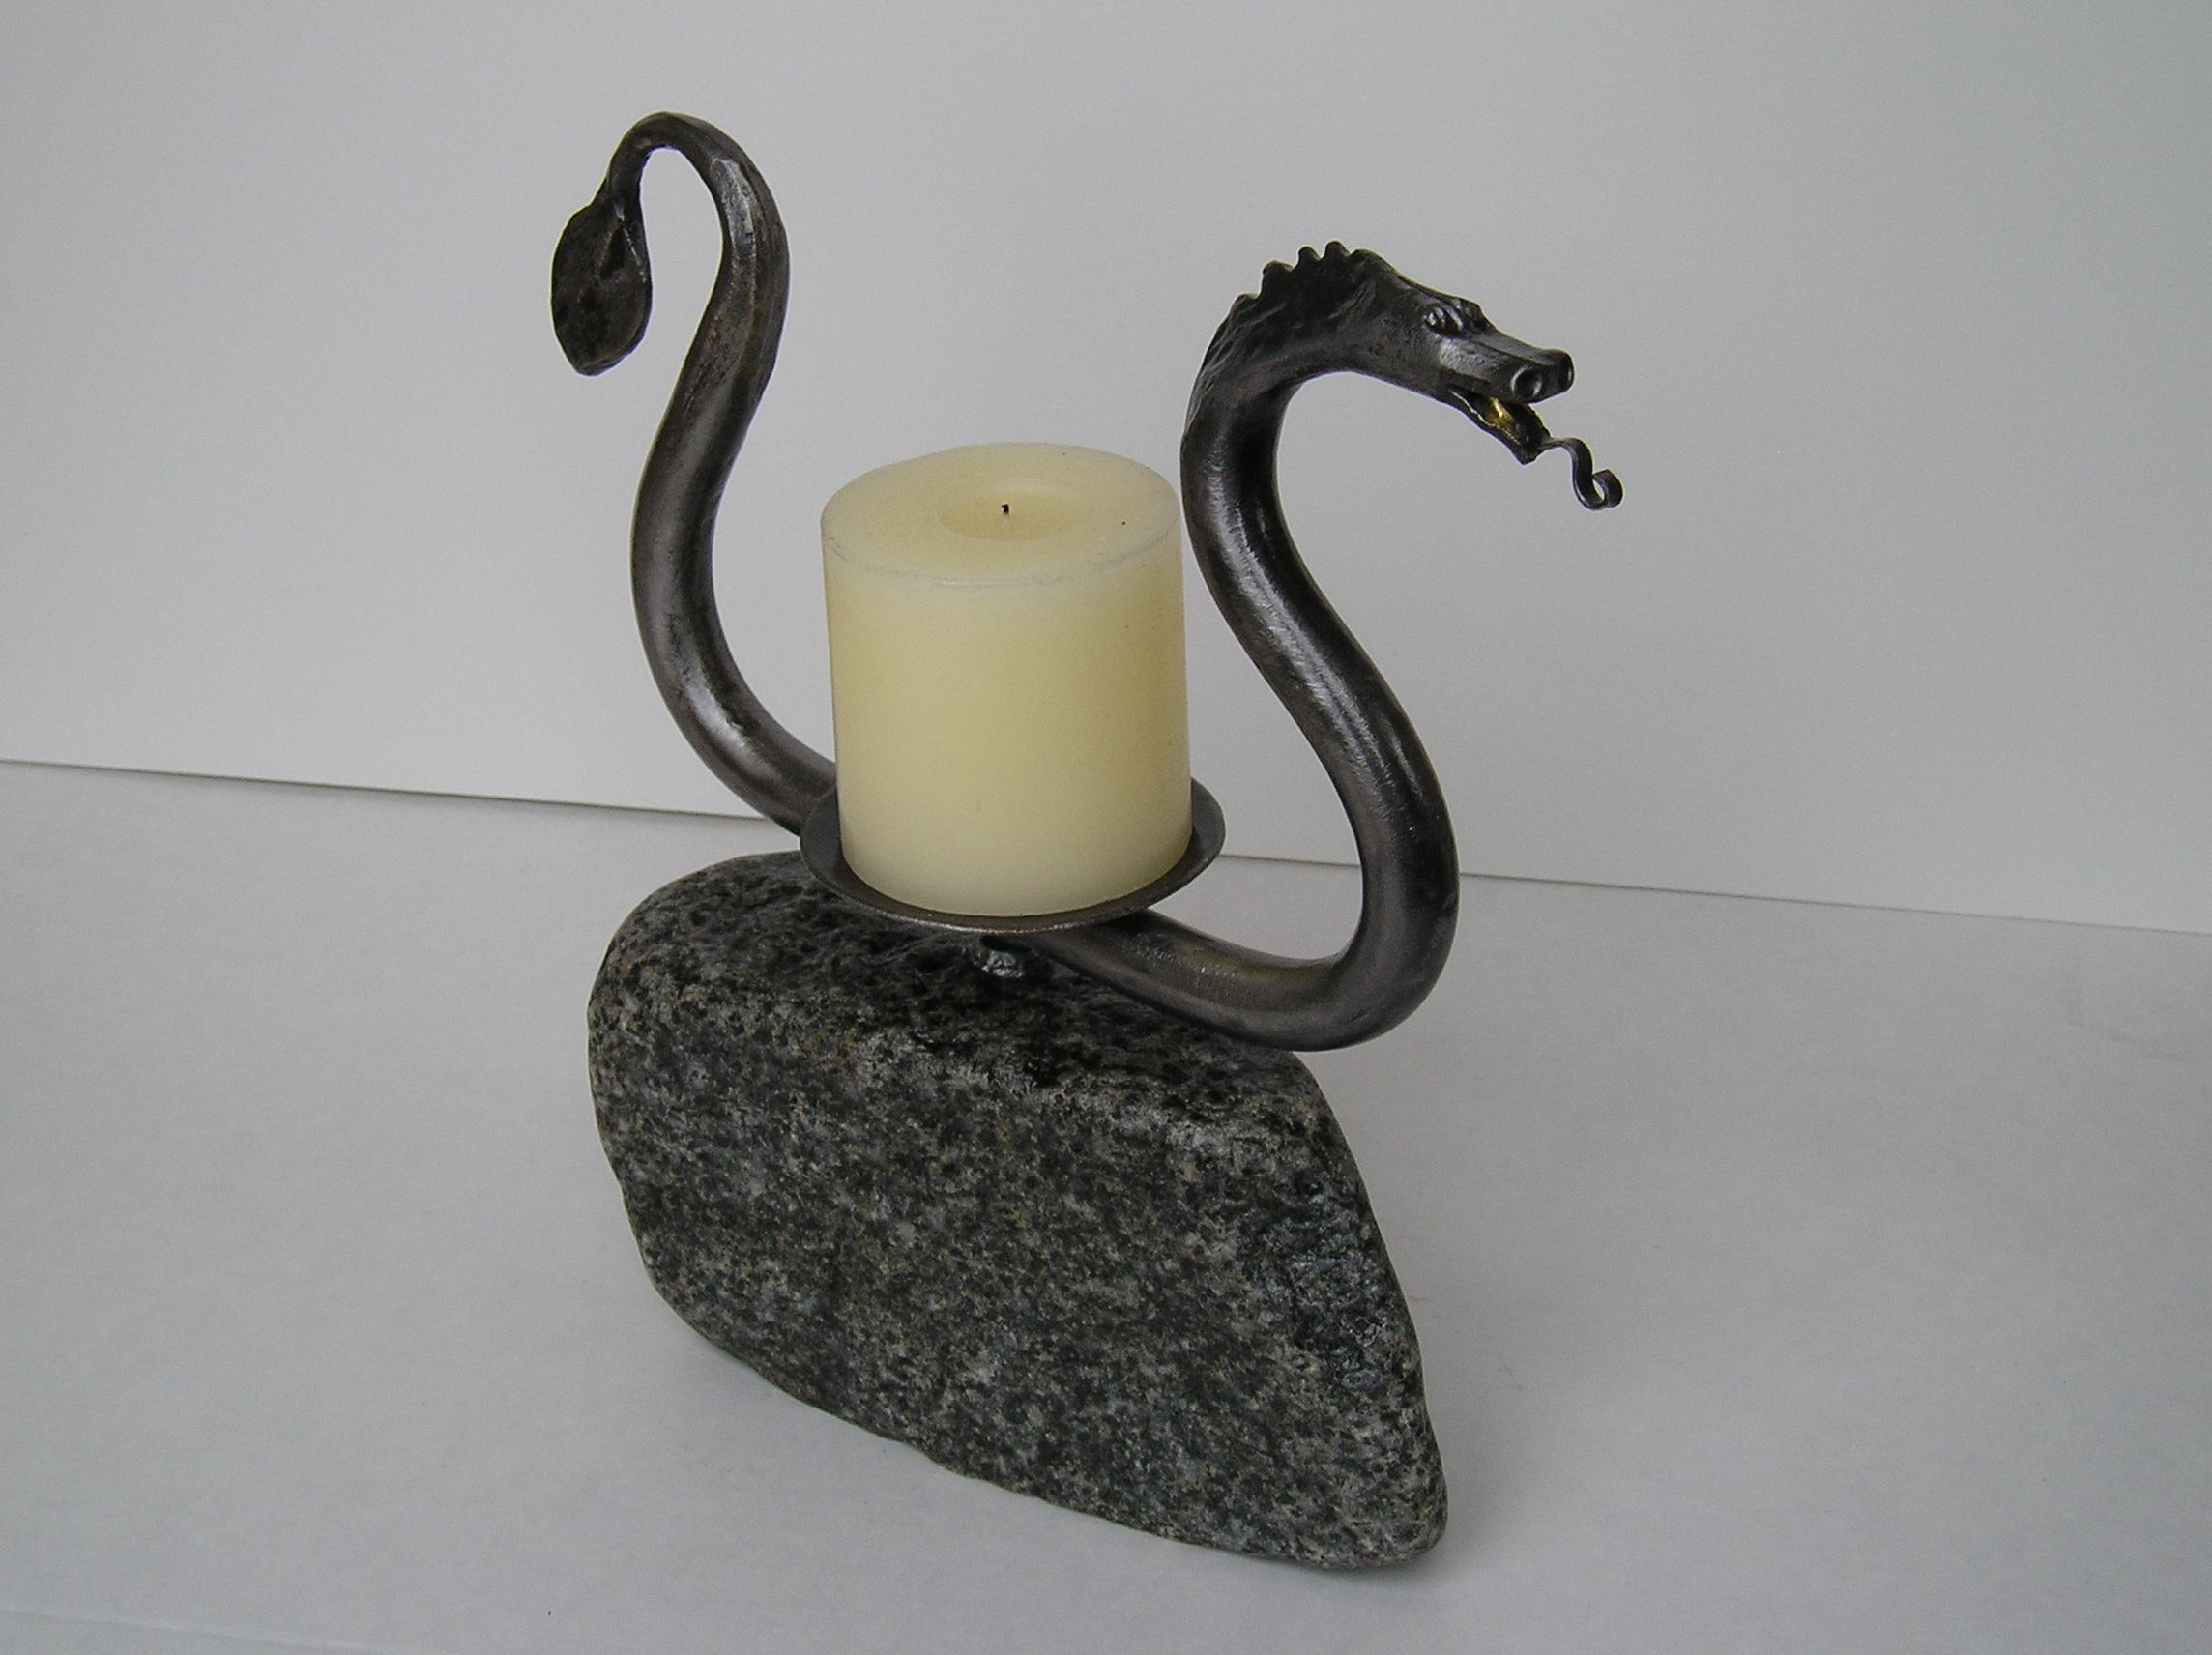 dragon candlestick in rock